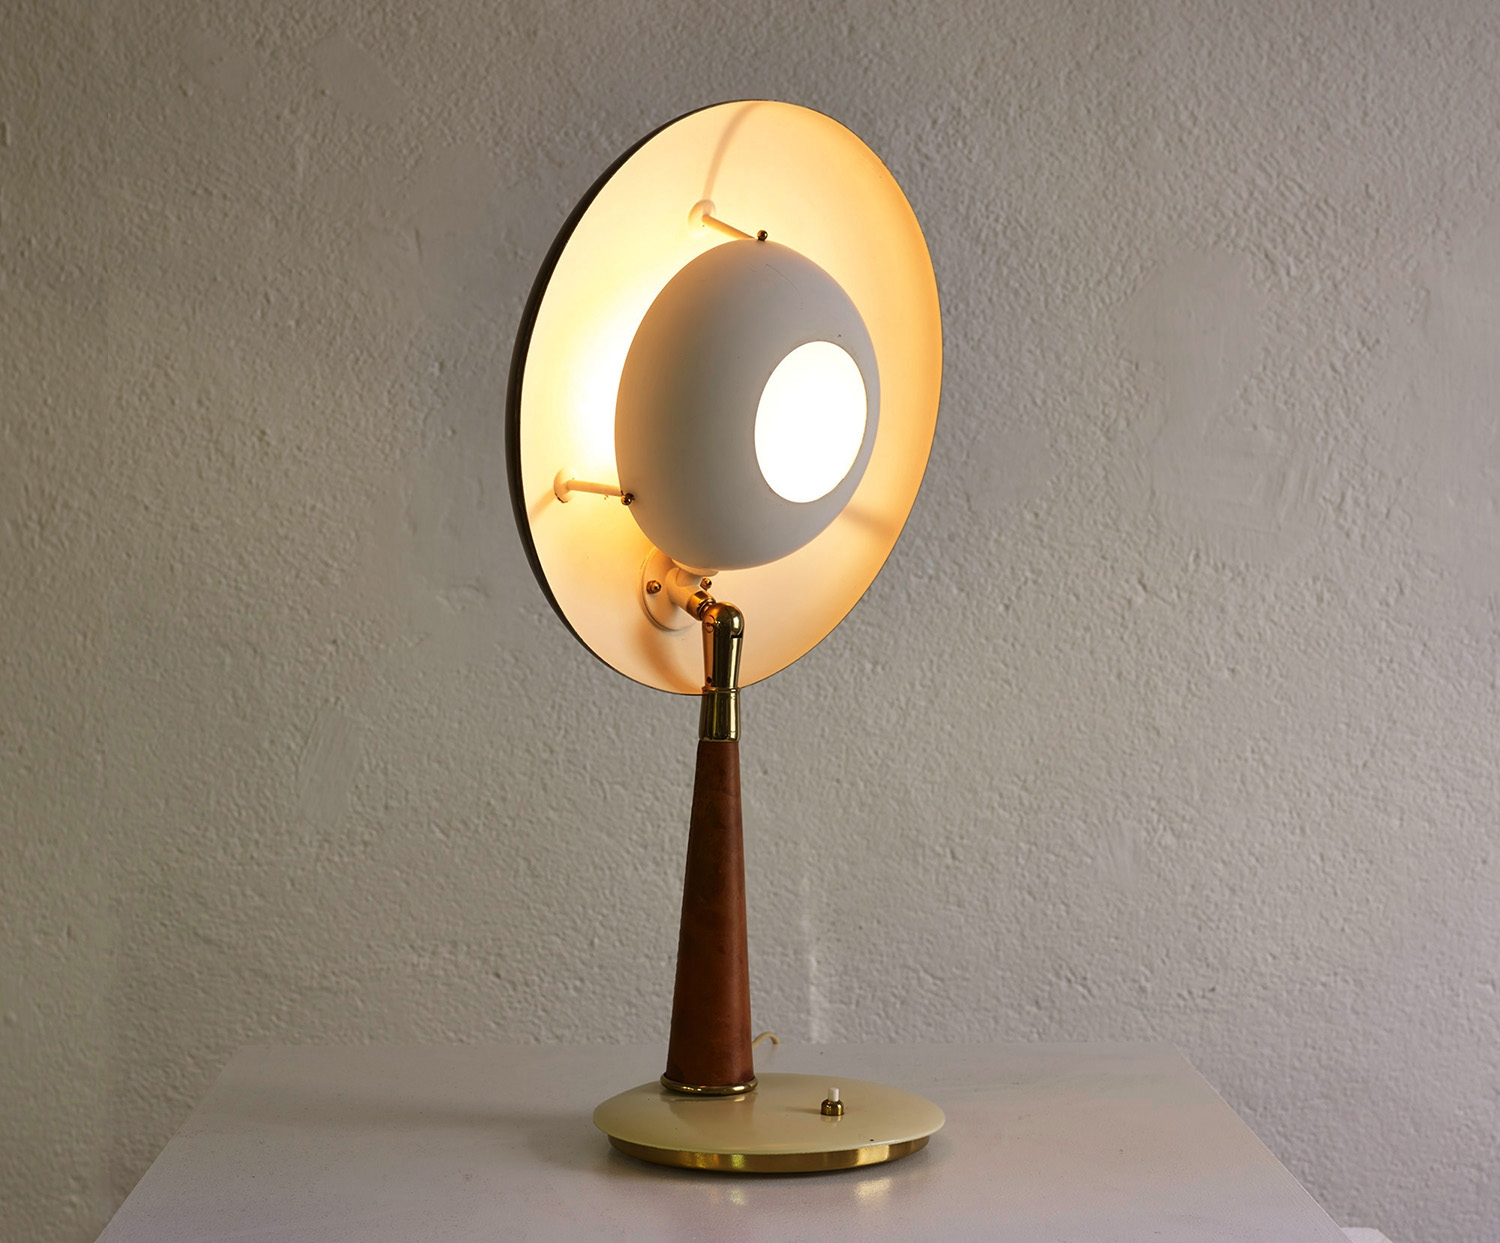 angelo-lelli-table-lamp-image-02